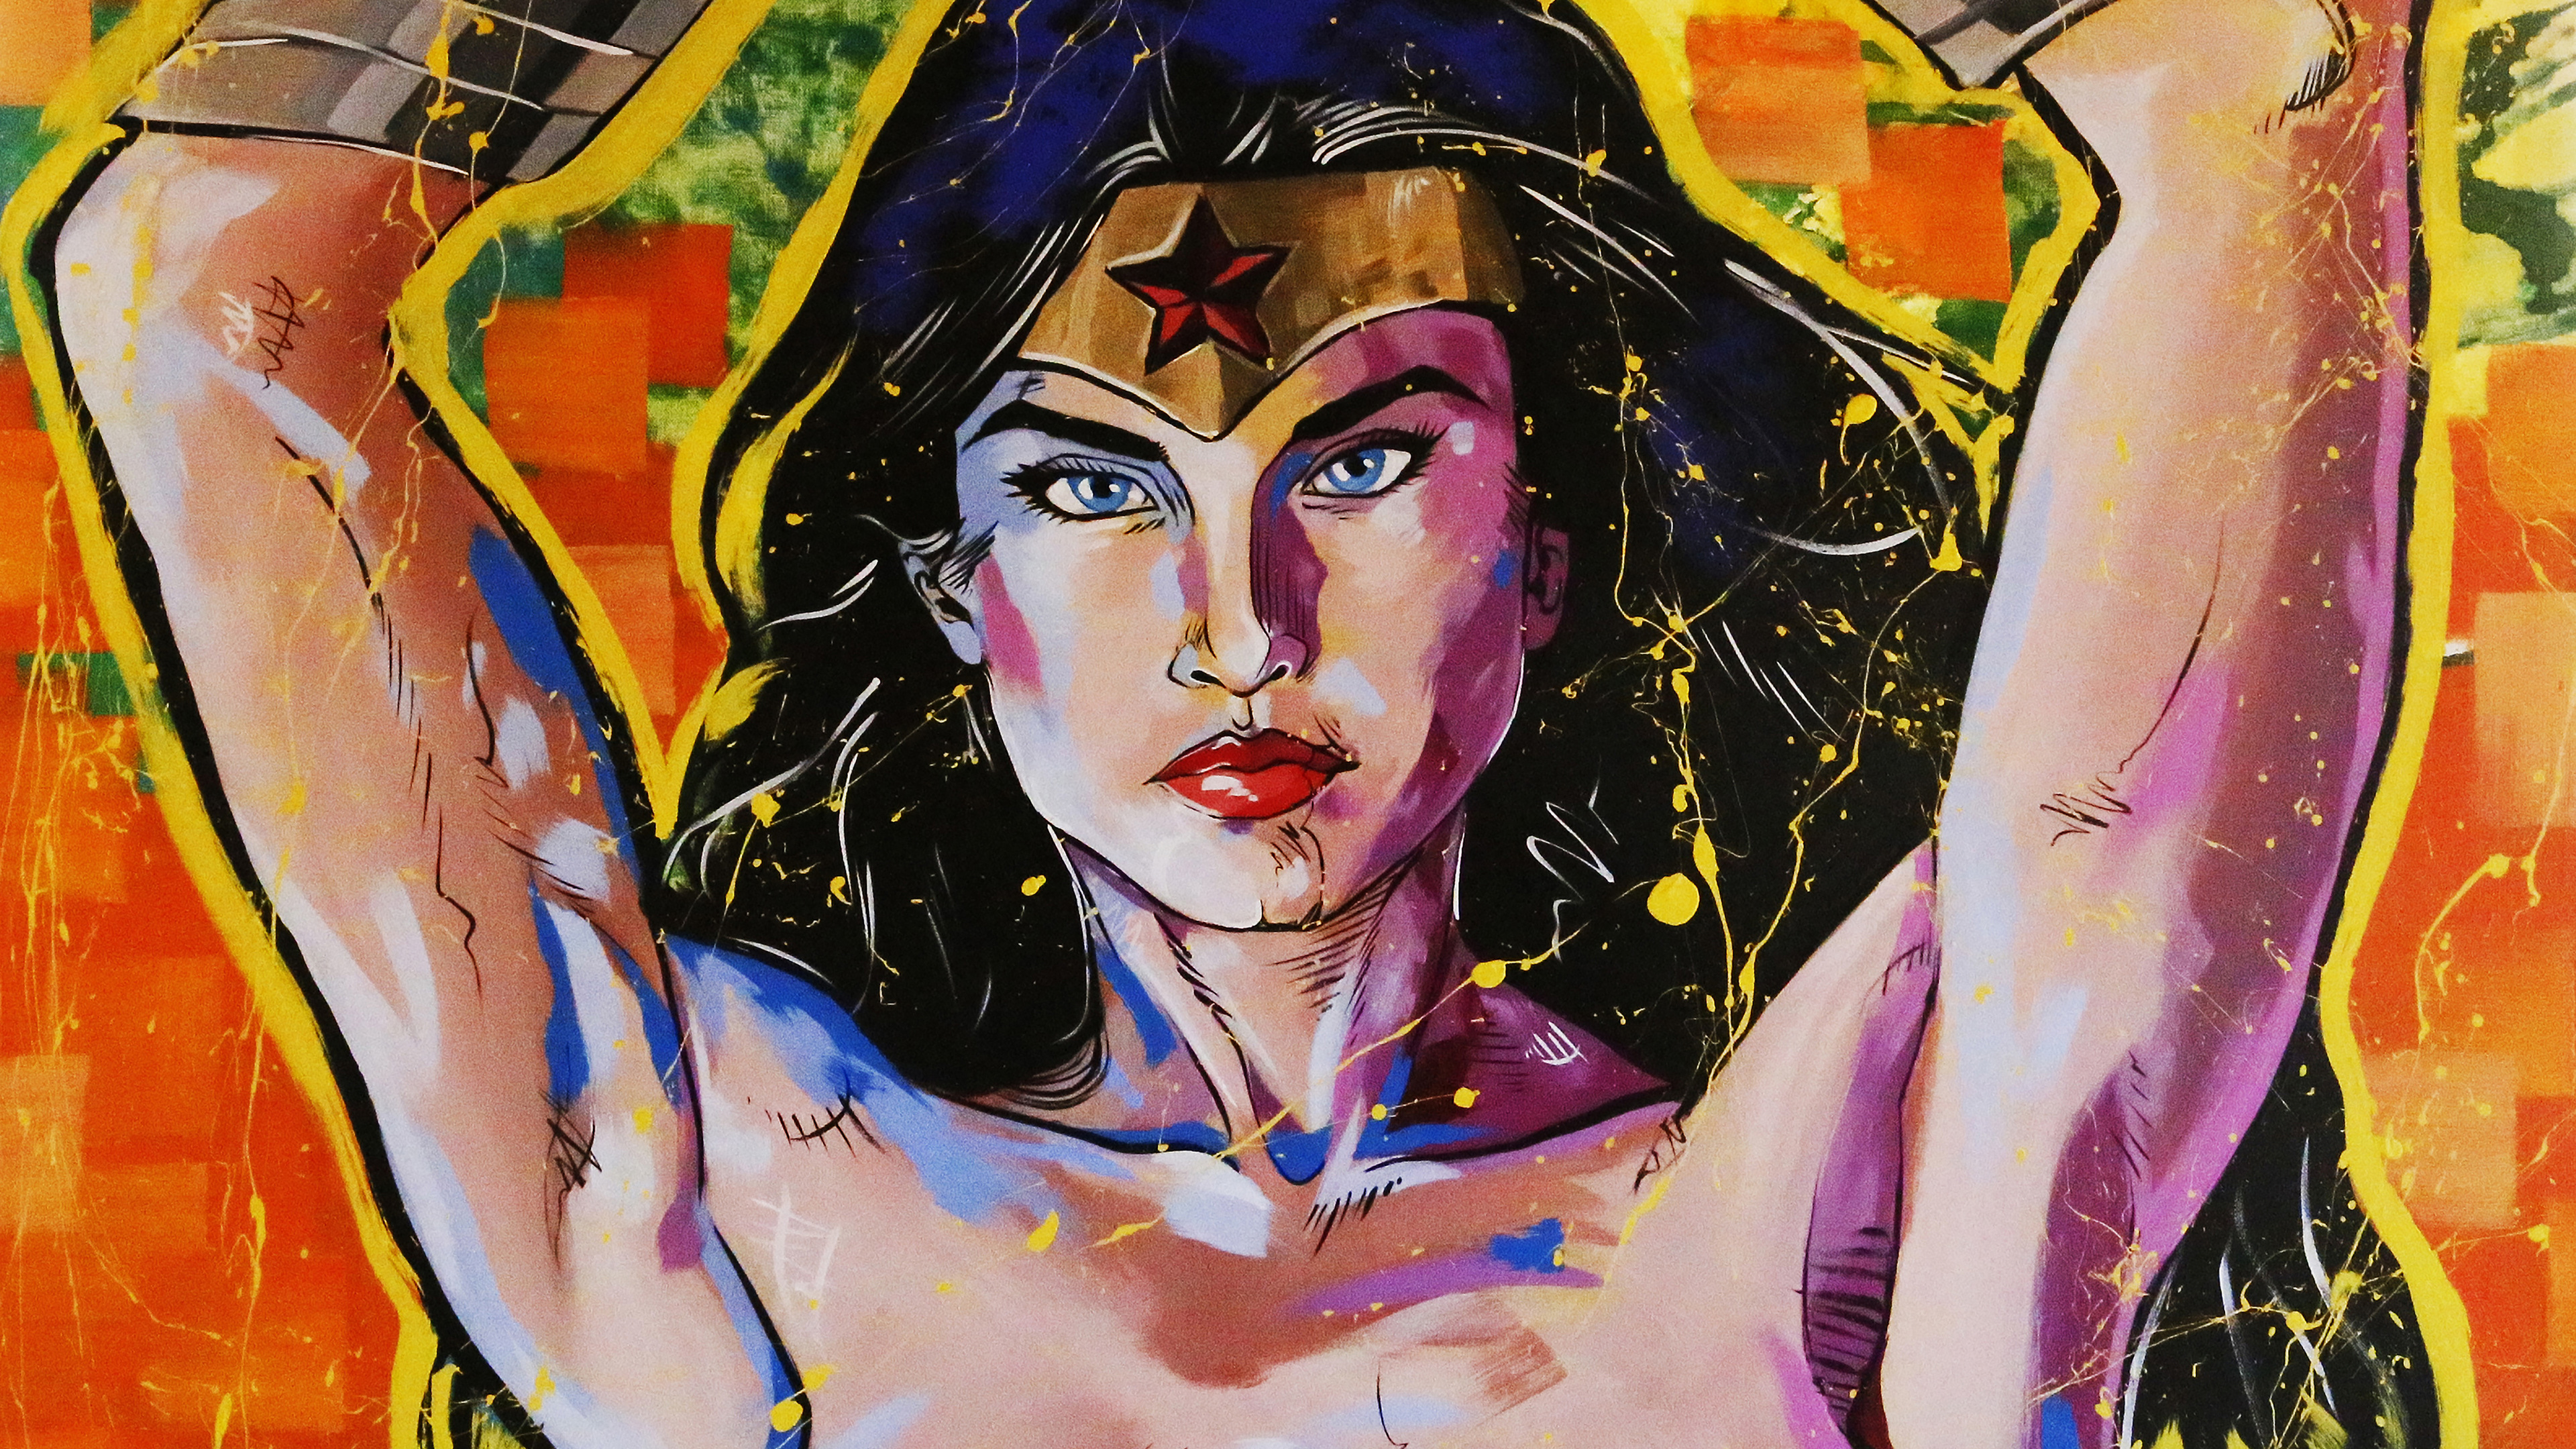 wonder woman painting art 4k 1543619987 - Wonder Woman Painting Art 4k - wonder woman wallpapers, superheroes wallpapers, painting wallpapers, hd-wallpapers, digital art wallpapers, artwork wallpapers, artist wallpapers, 4k-wallpapers